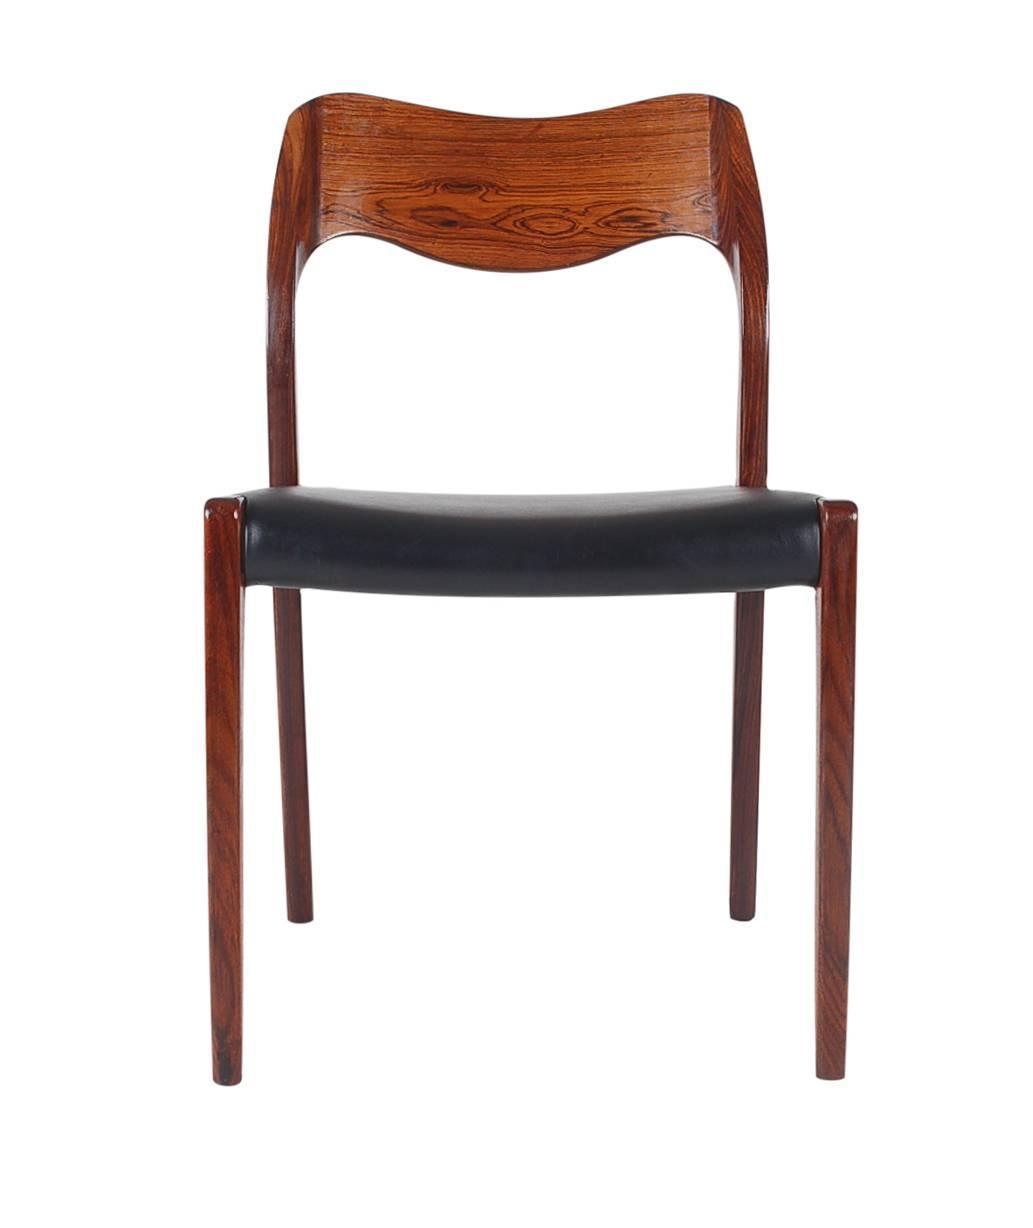 Danish Rosewood Dining Chairs No 71 By Niels Moller At 1stdibs